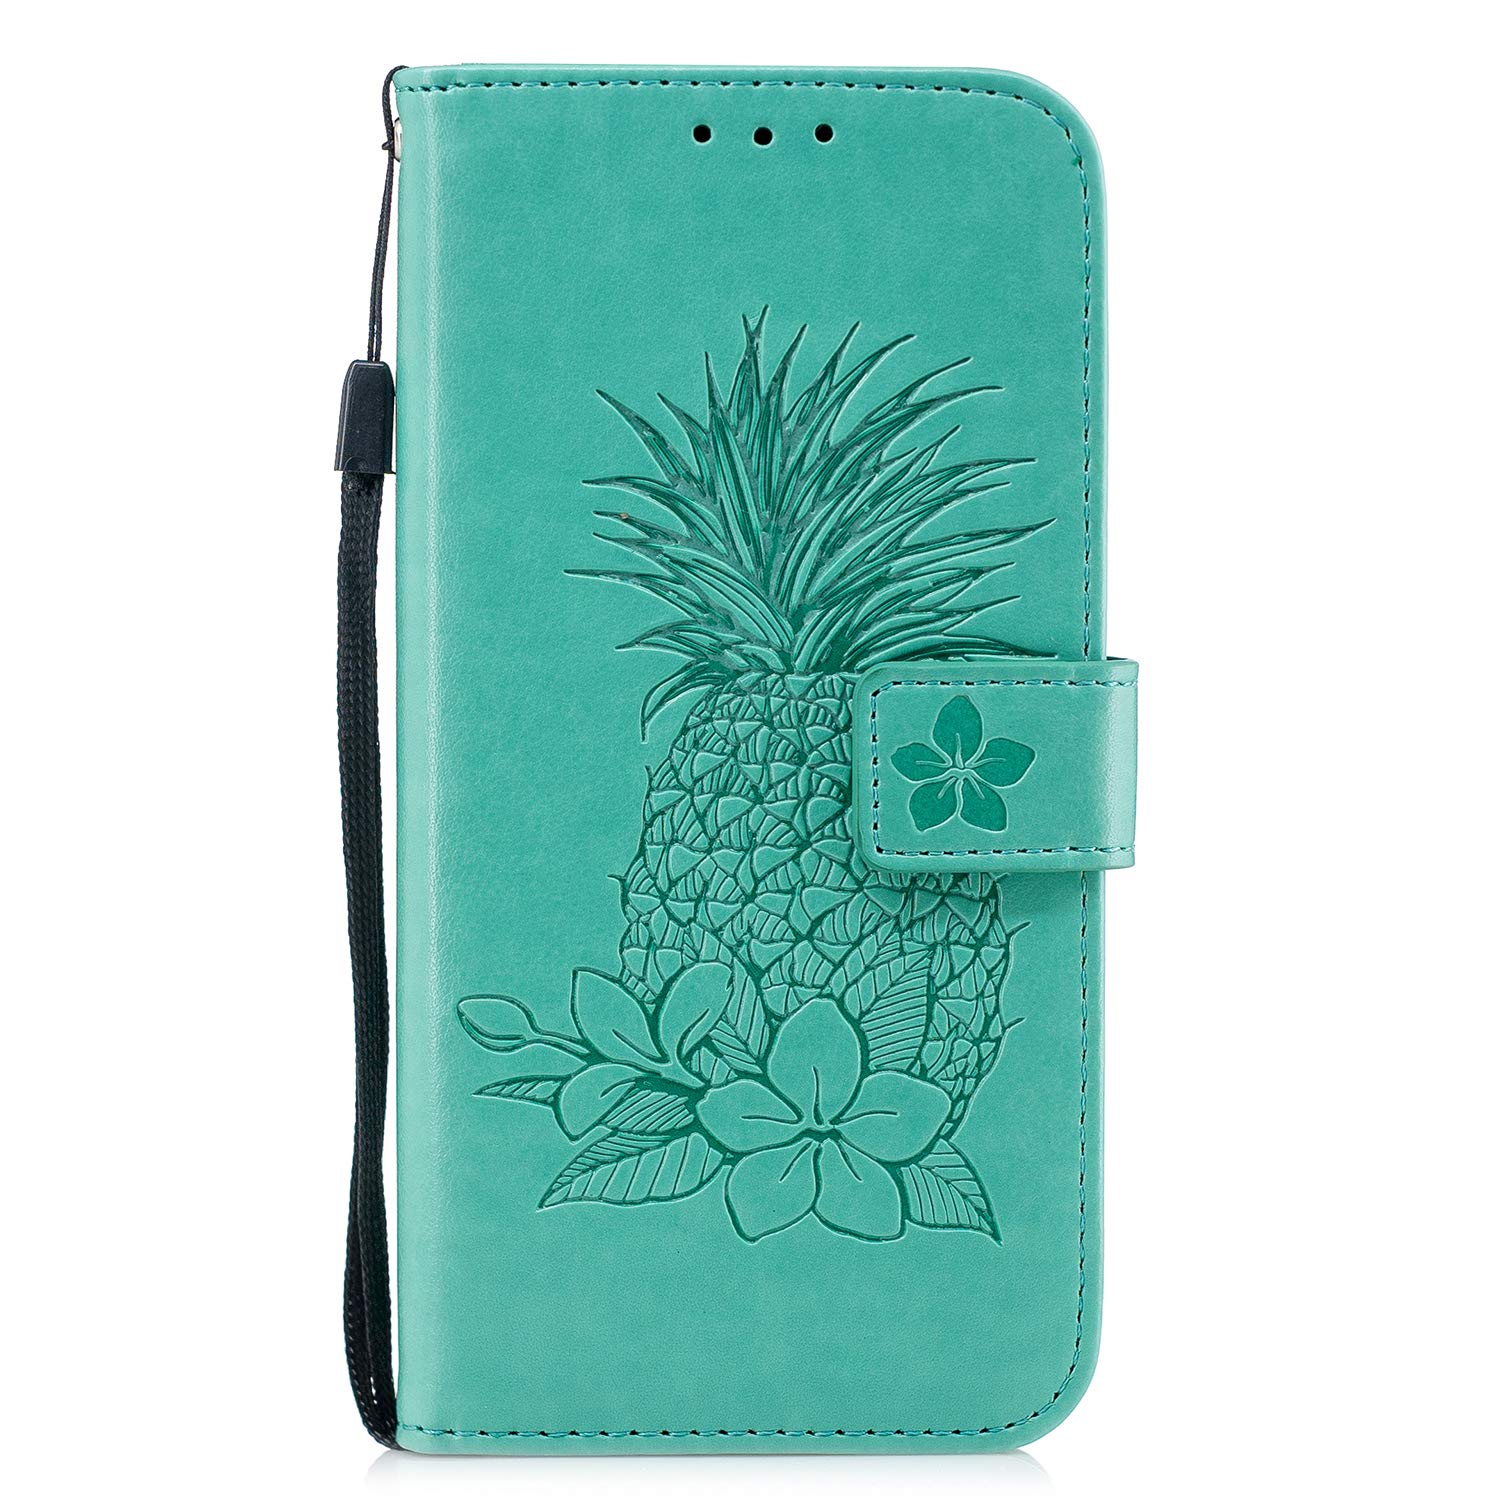 Samsung Galaxy S10 Plus Case, AIIYG DS Classic 3D Pineapple Pattern [Kickstand Feature] Flip Folio Leather Wallet Case with ID and Credit Card Pockets for Samsung Galaxy S10 Plus_Mint